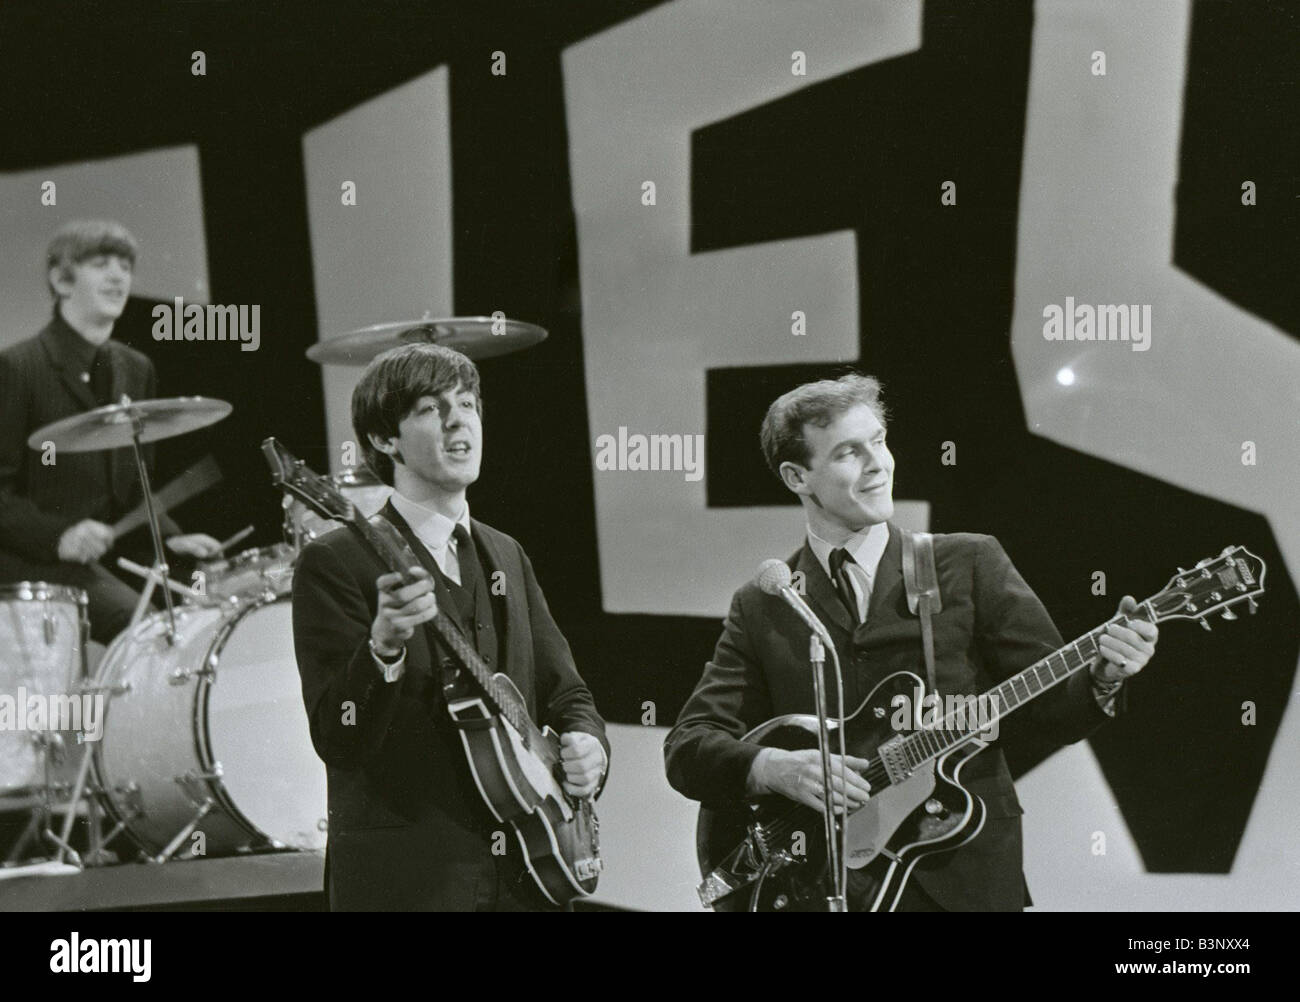 The Beatles rehearse for their appearance on the Ed Sullivan TV Show in New York George Harrison was bed ridden - Stock Image